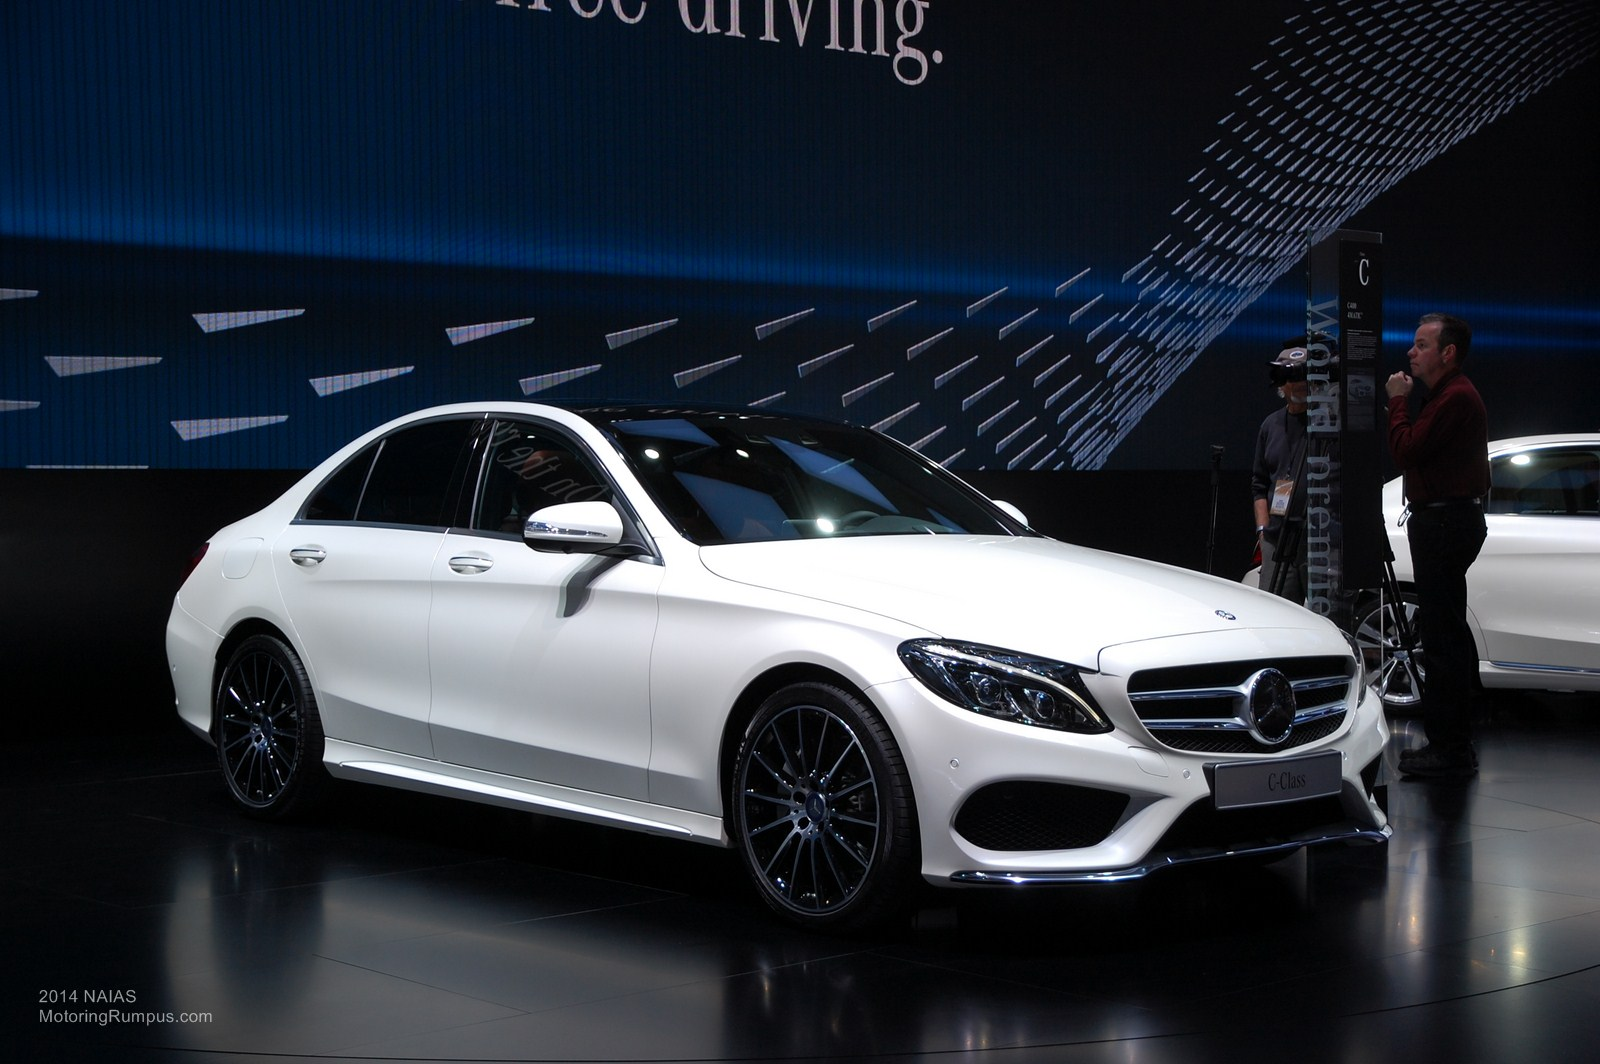 2014 naias mercedes benz c400 4matic motoring rumpus for Mercedes benz c400 4matic